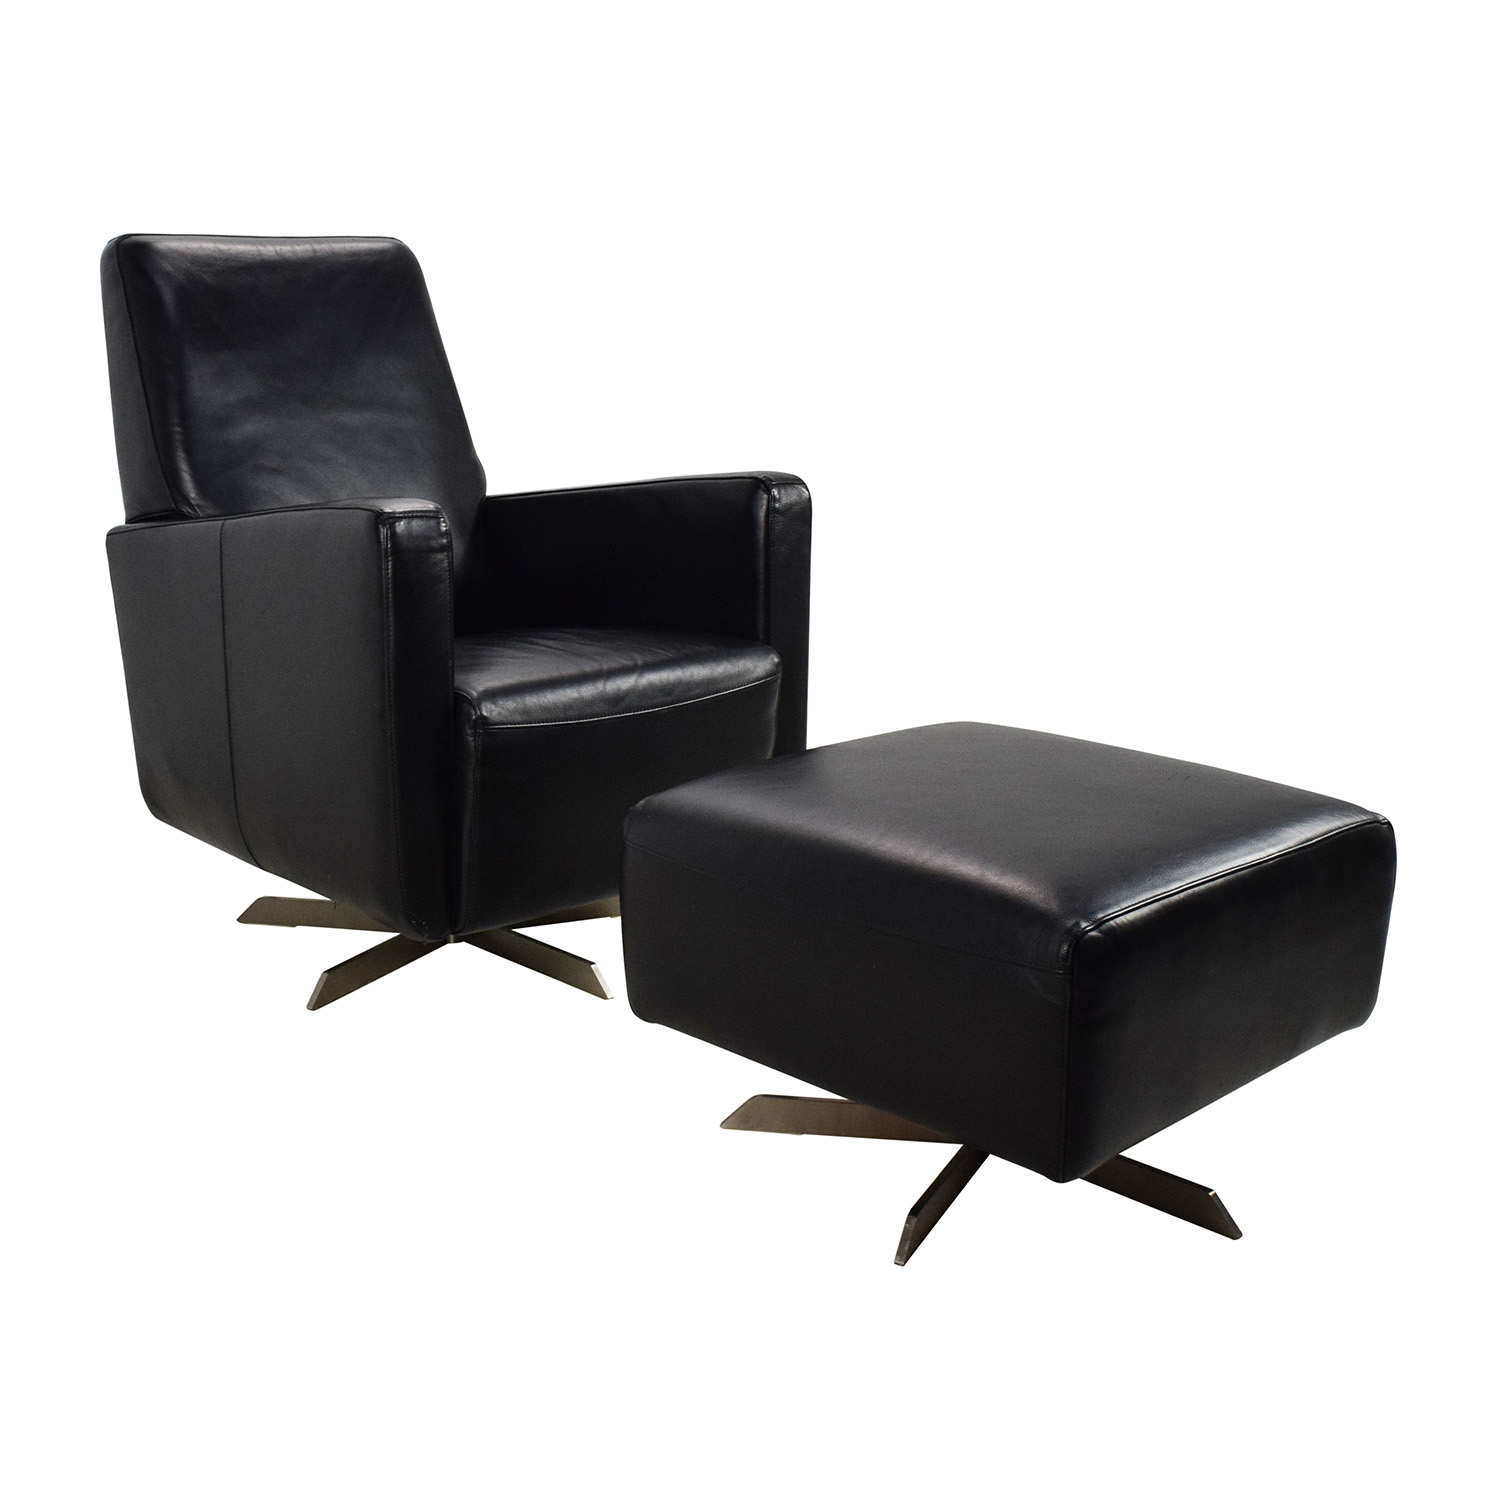 90% OFF Natuzzi Natuzzi Black Leather Swivel Chair with Ottoman